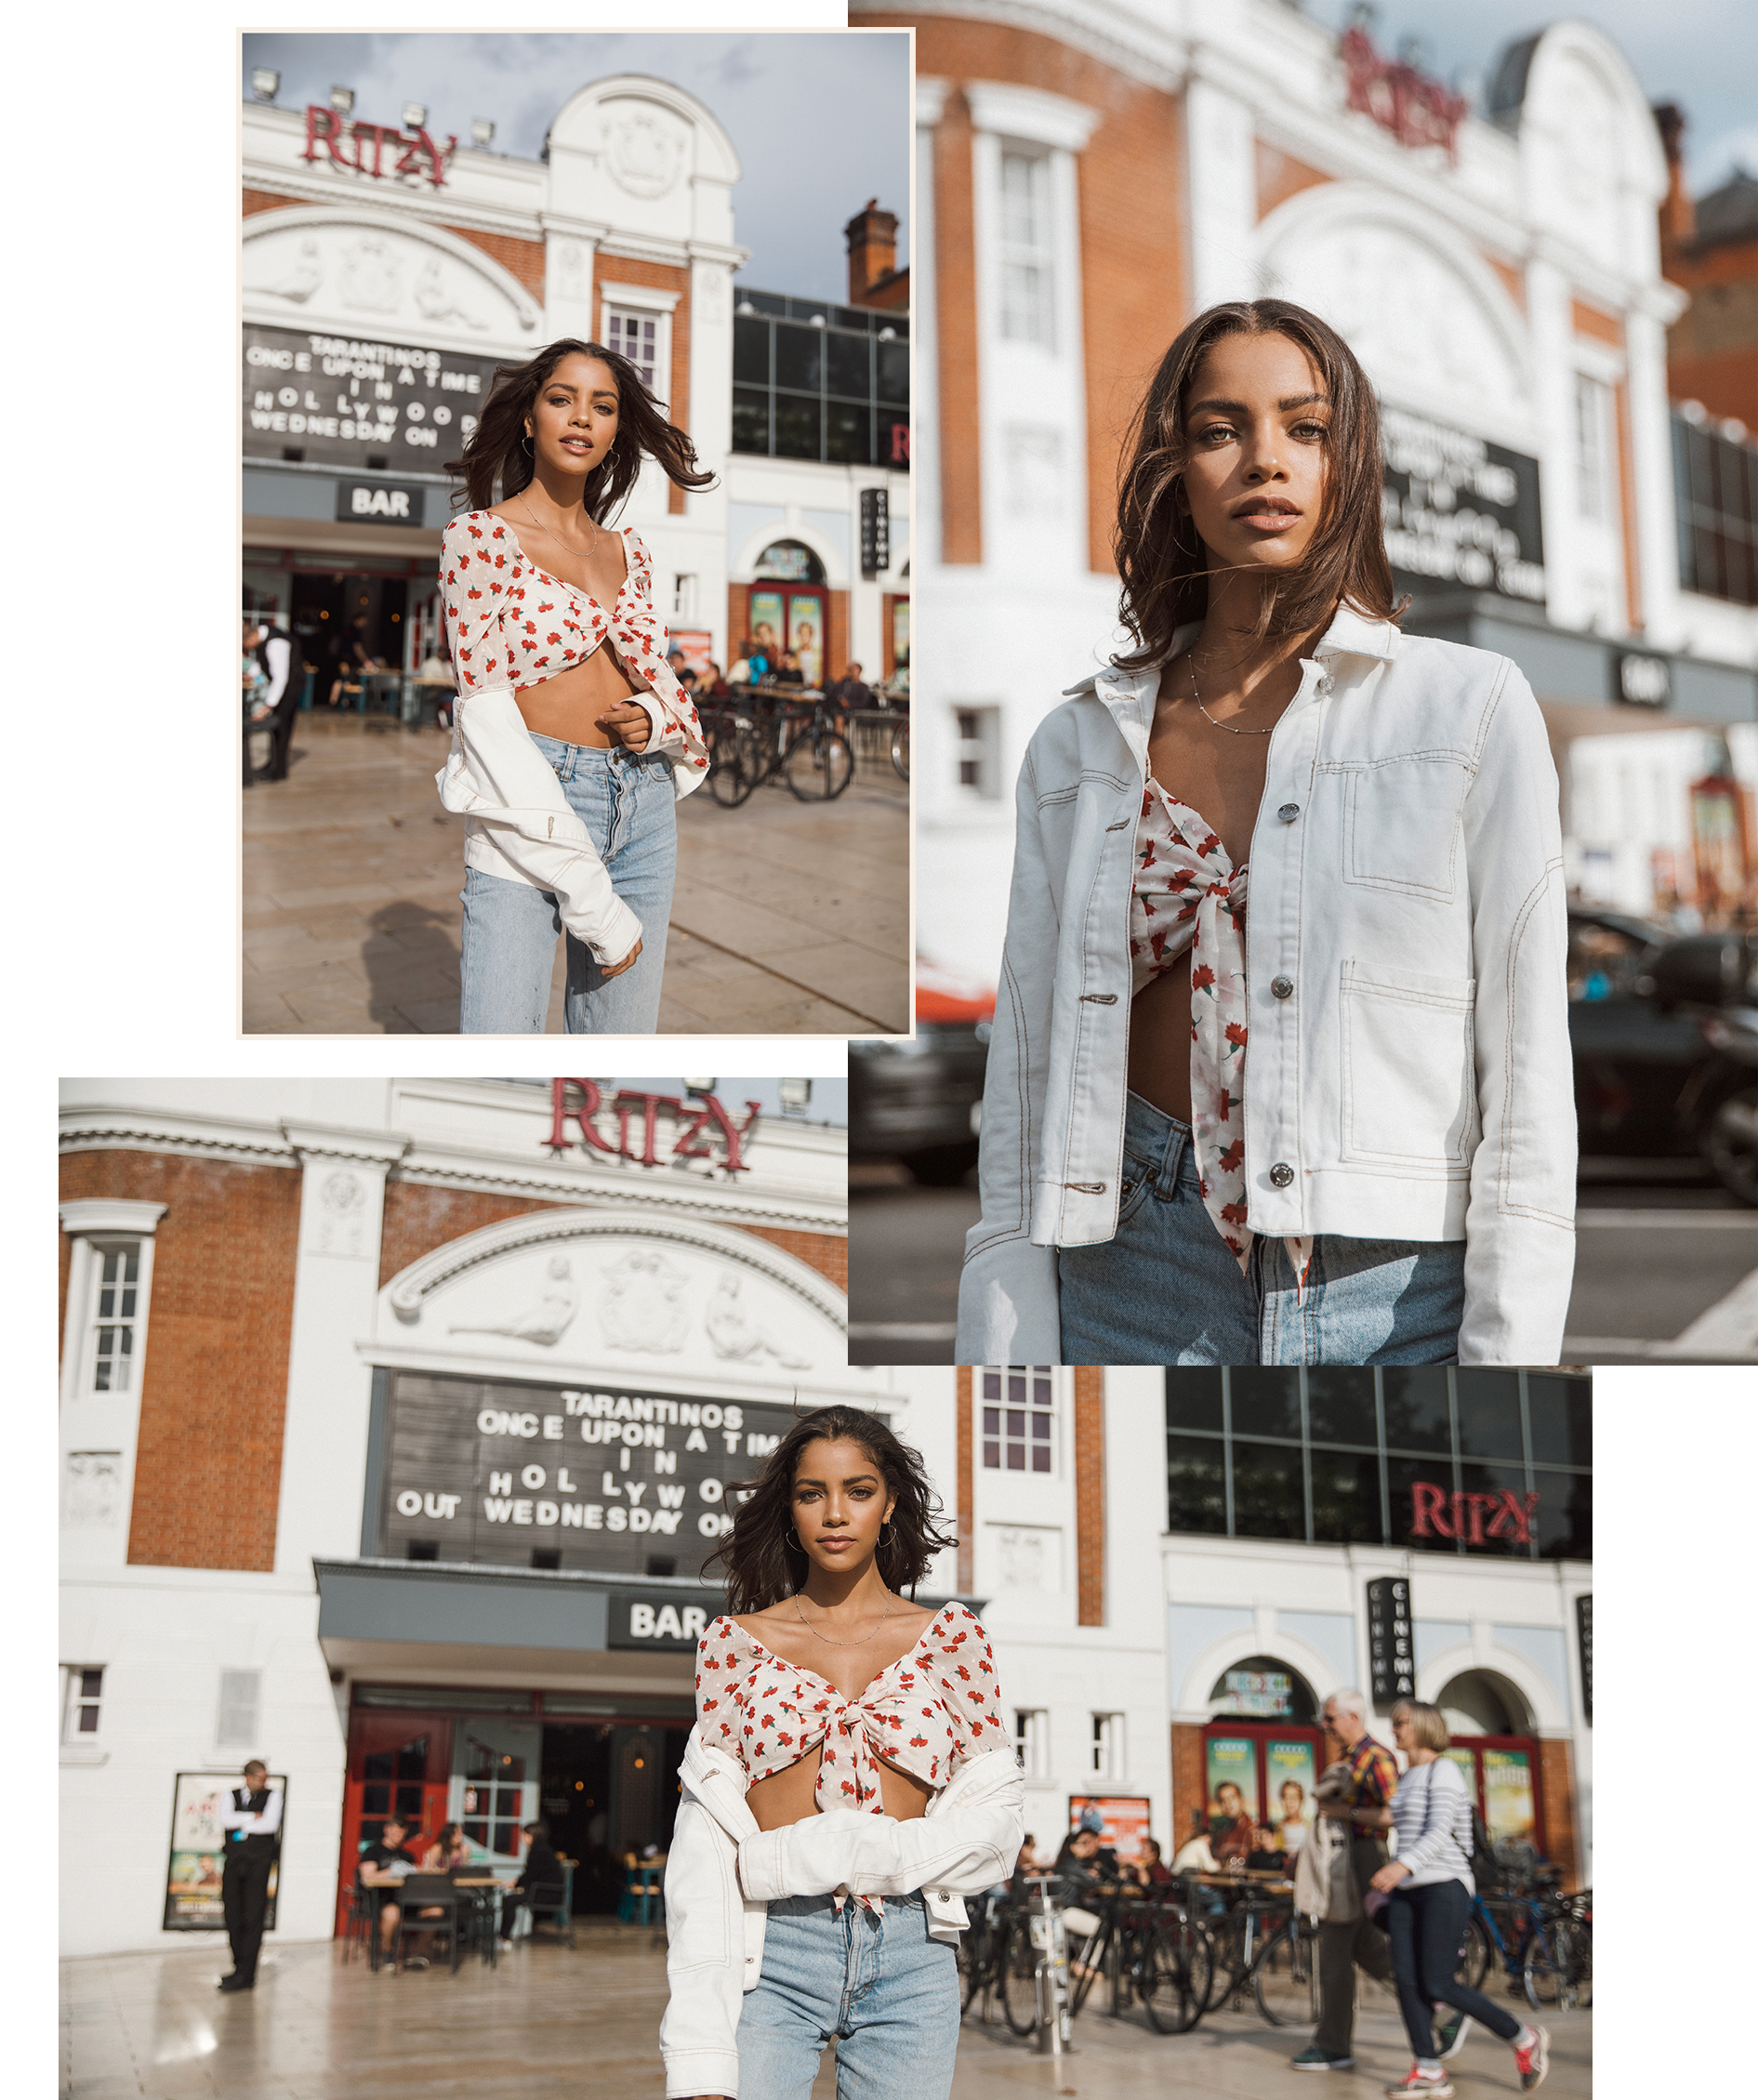 Melody @ The Squad fashion shoot in Brixton Ritzy cinema by London photographer Ailera Stone